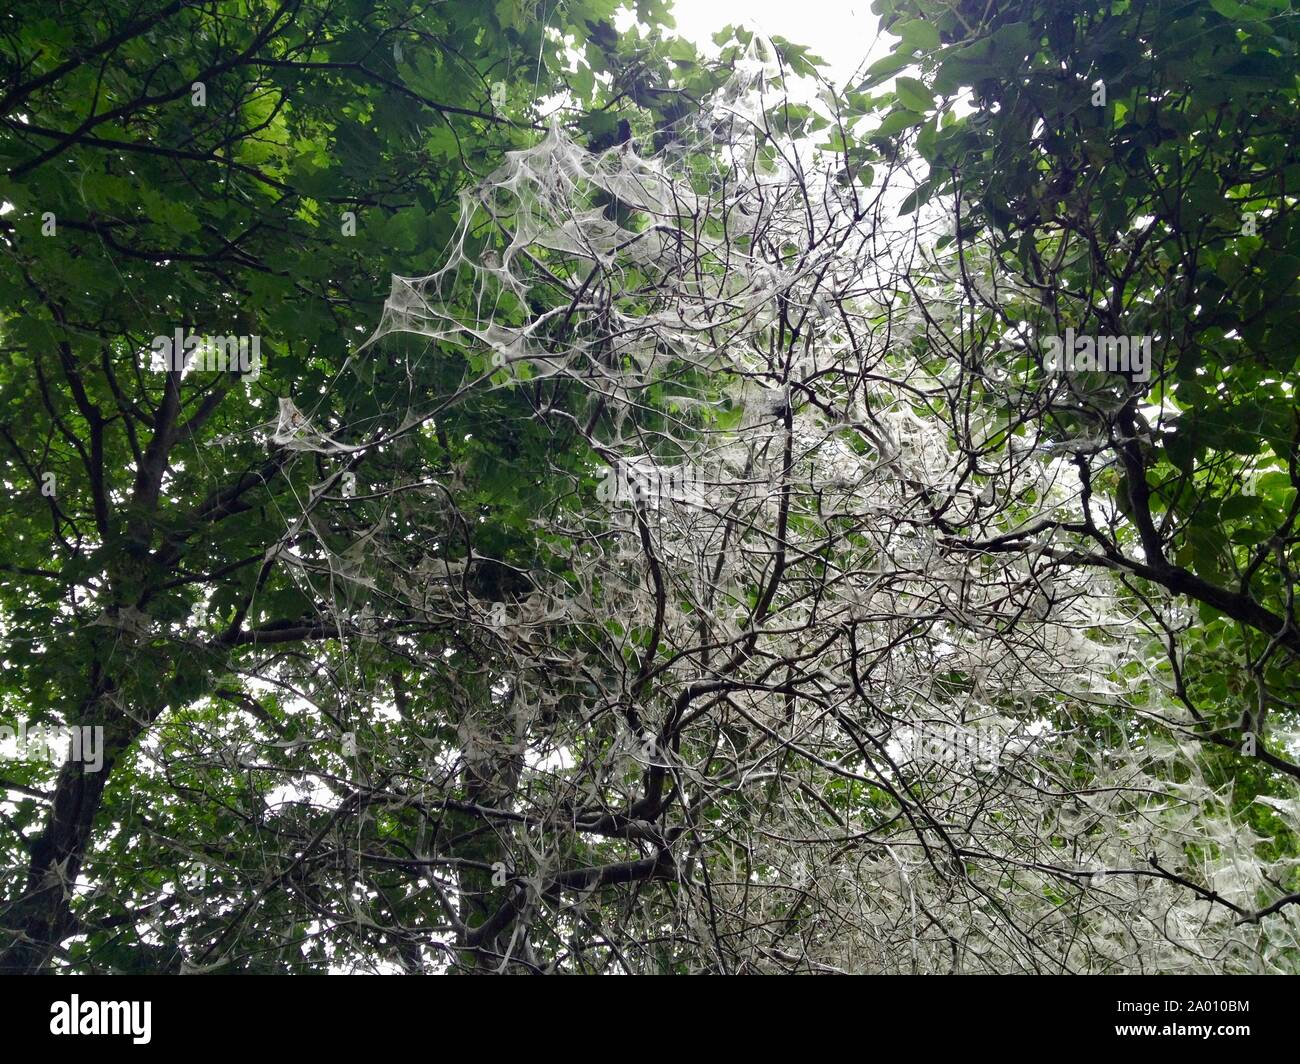 Trees / Bushes covered in Webs by the Ermine Moth (Gespinstmotte) looking spooky/scary in a Berlin Public Park Stock Photo